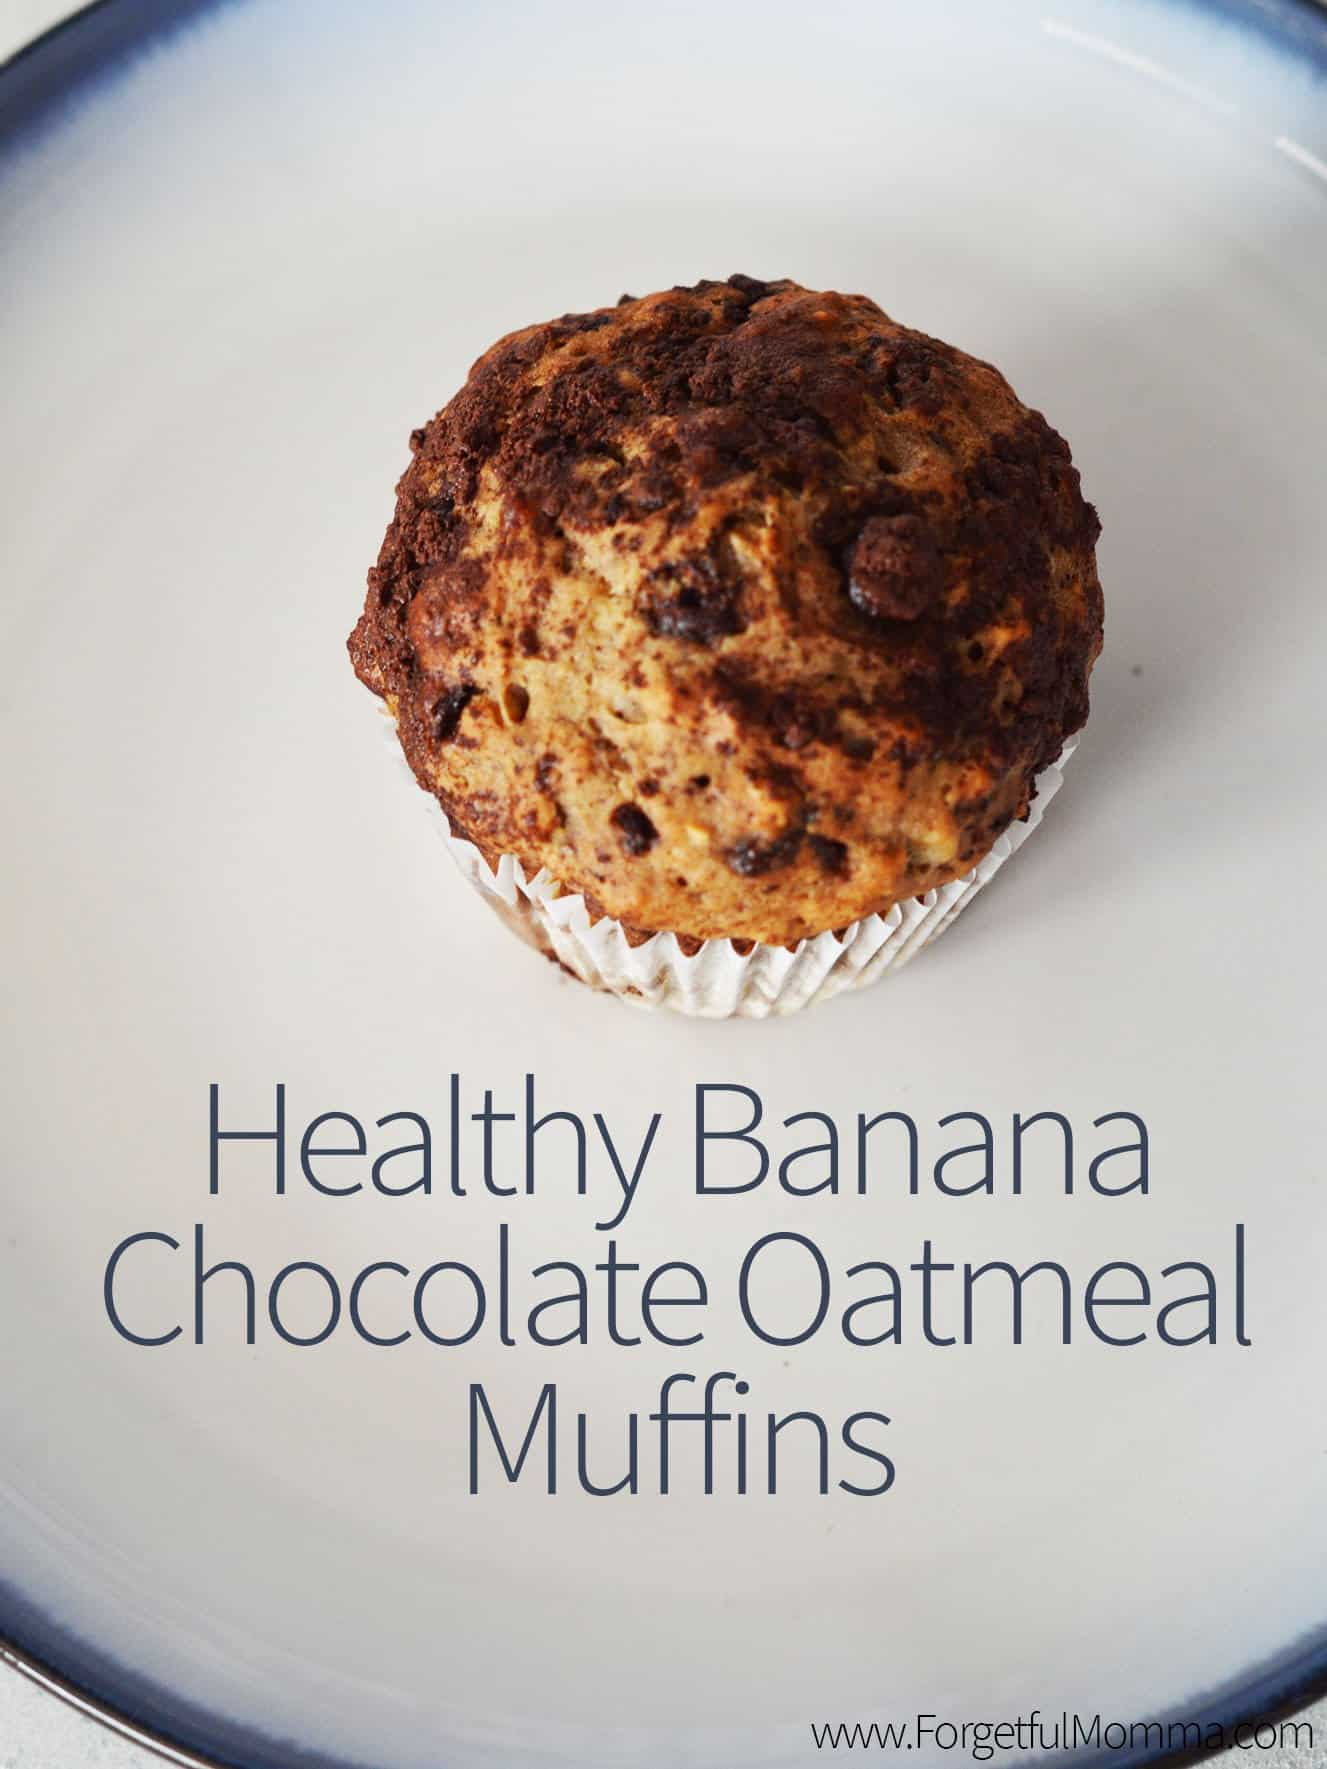 Healthy Banana Chocolate Oatmeal Muffins